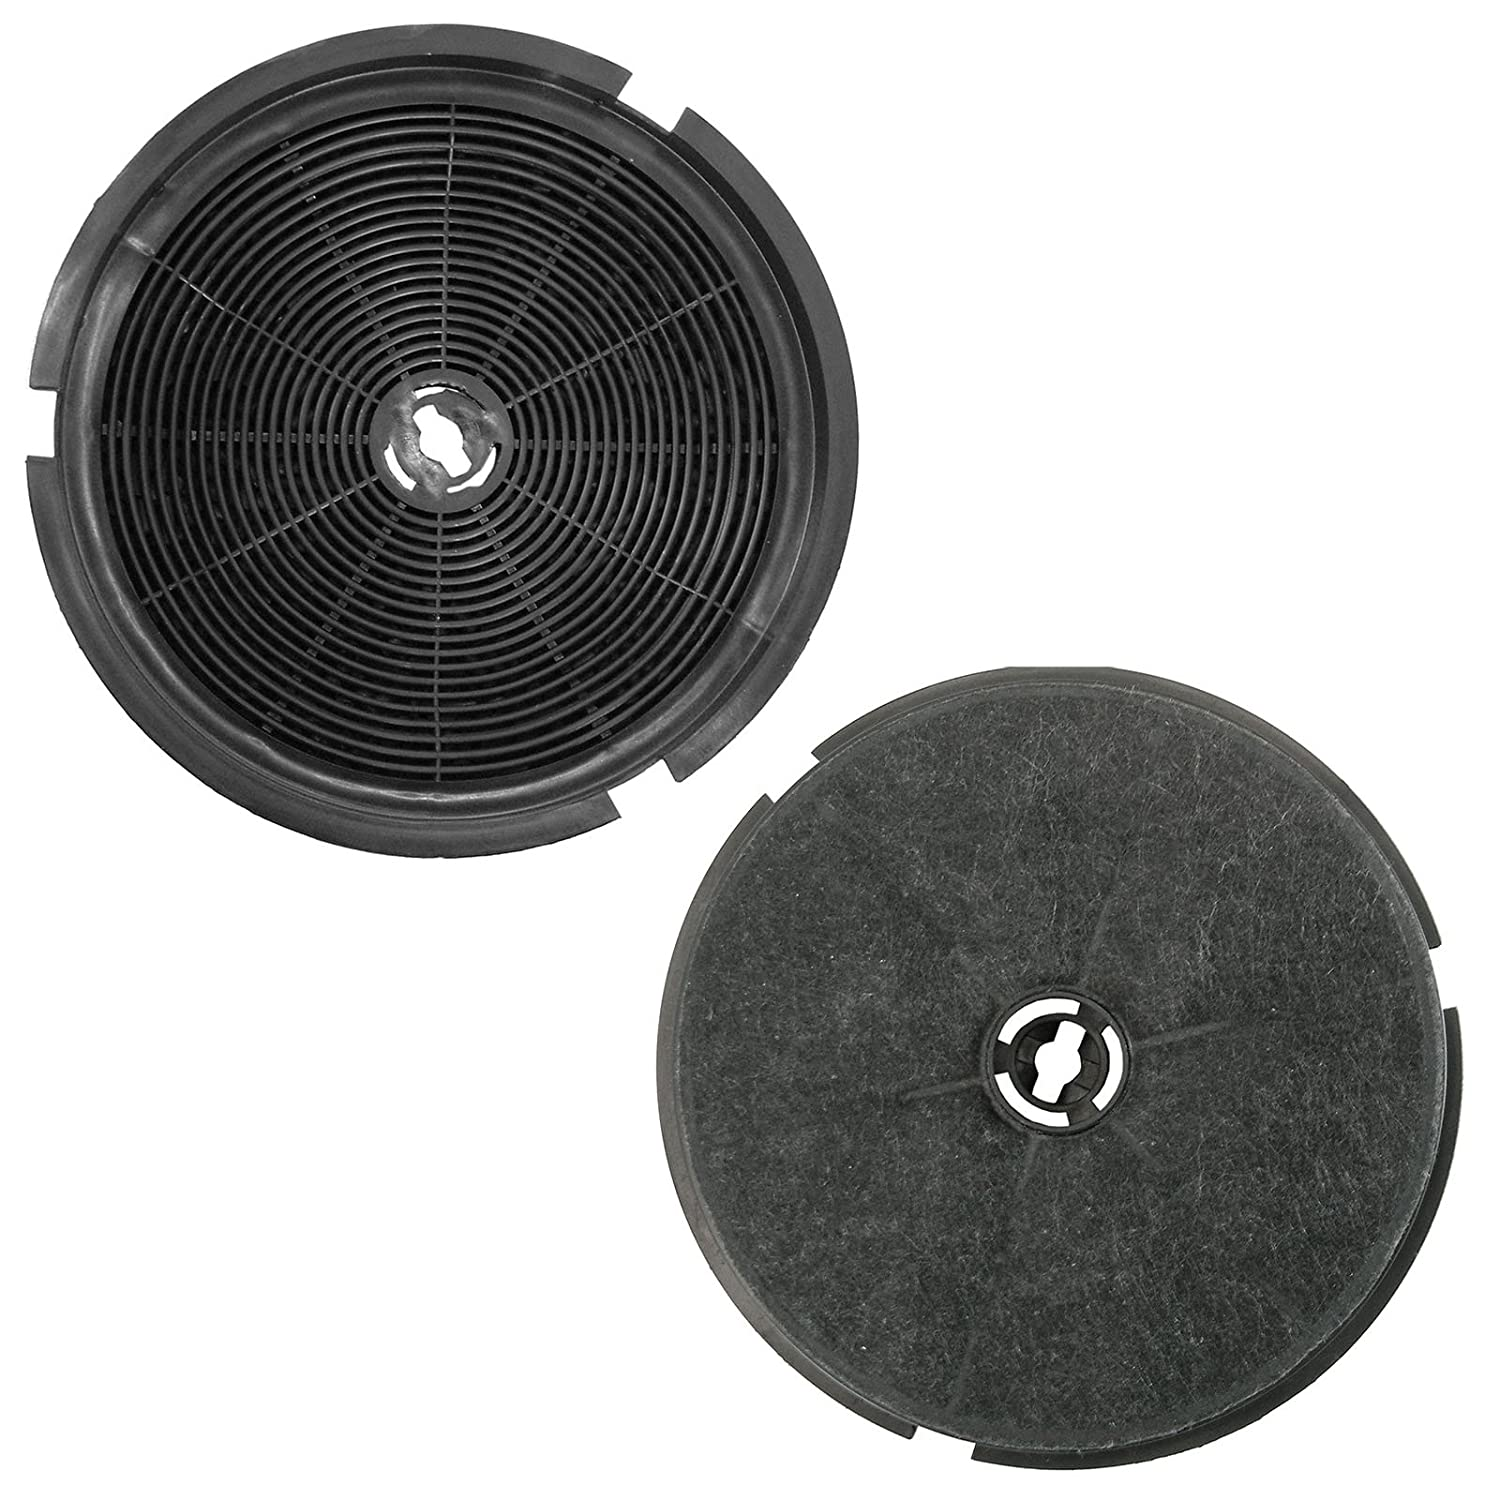 B/&Q Compatible Cooker Hood Carbon Filters Pack of 2